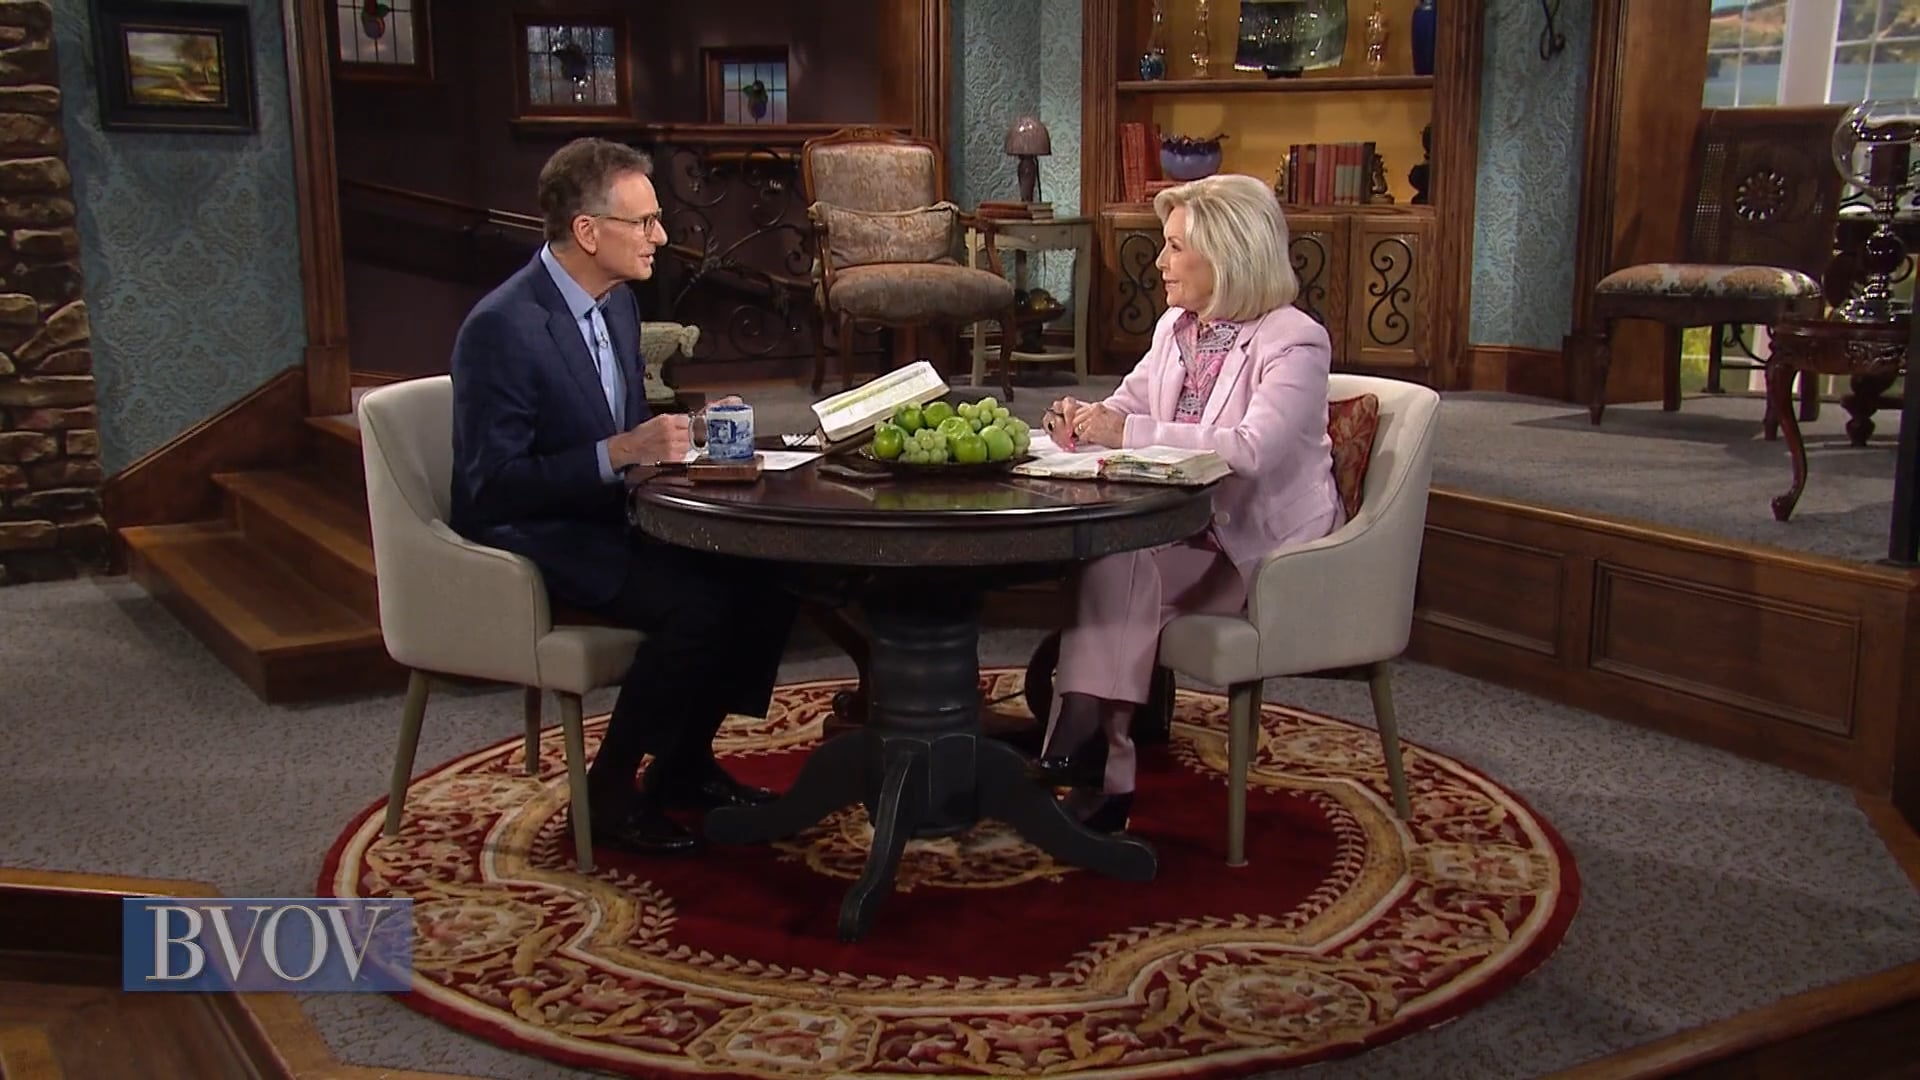 Do you know the benefits of being a tither? Join Gloria Copeland and George Pearsons on Believer's Voice of Victory, as they reveal the biblical outline for the tither's top 10 rights and privileges. Start the new year by tithing, and make 2021 your most prosperous year yet!